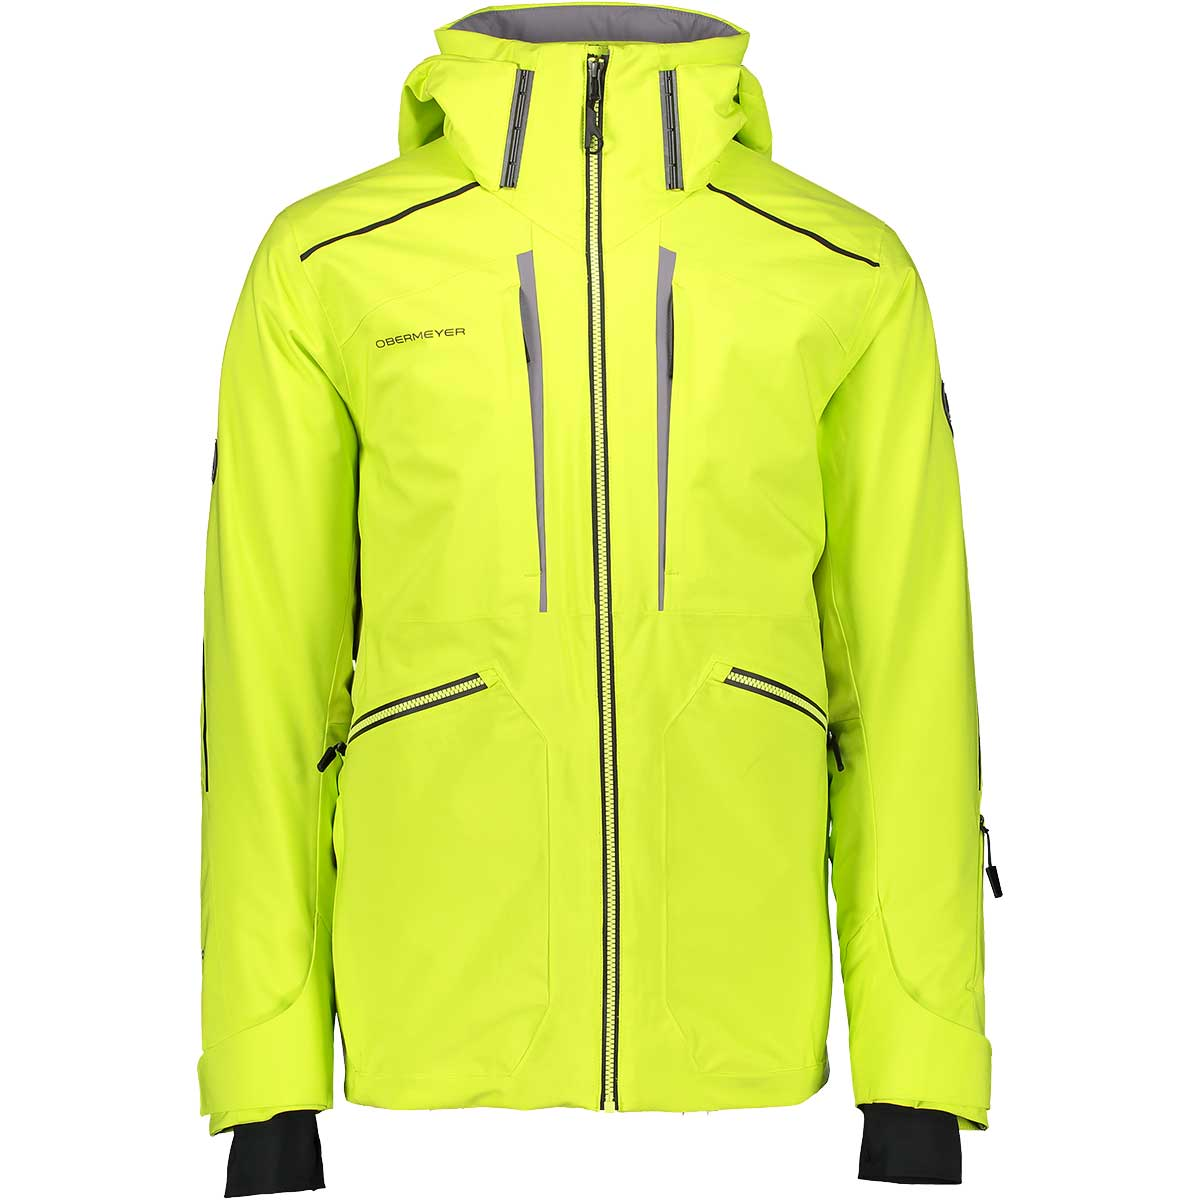 Obermeyer men's Kodiak Jacket in Limelight front view